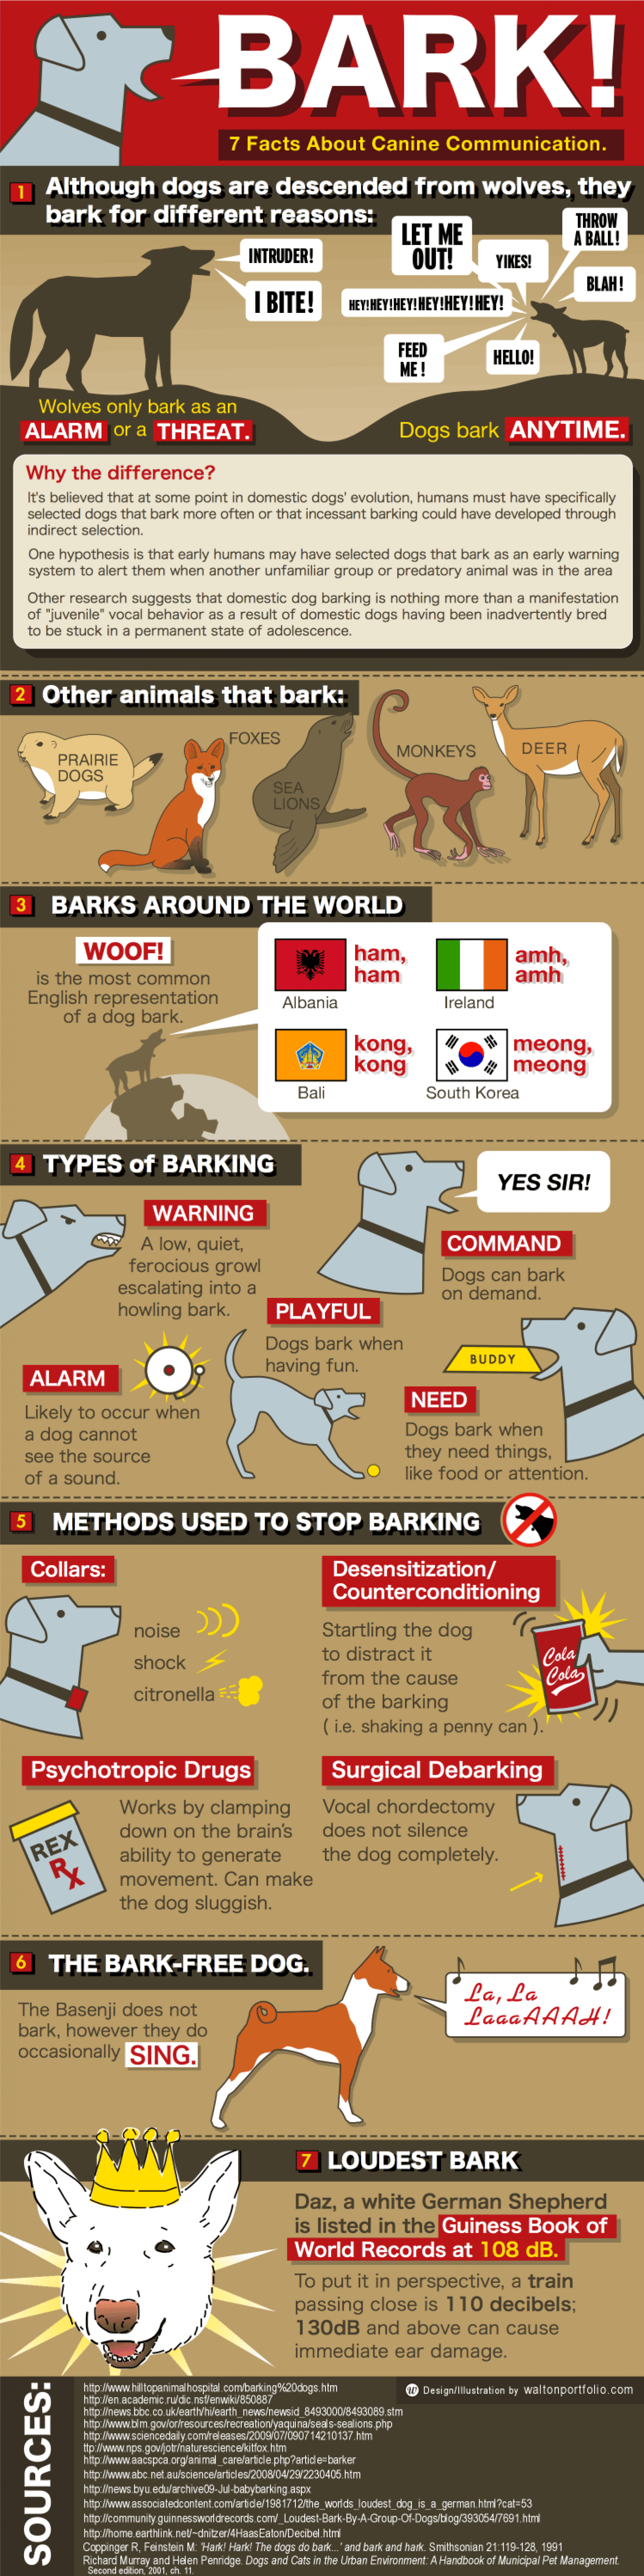 Bark! 7 Facts about Canine Communication  Infographic